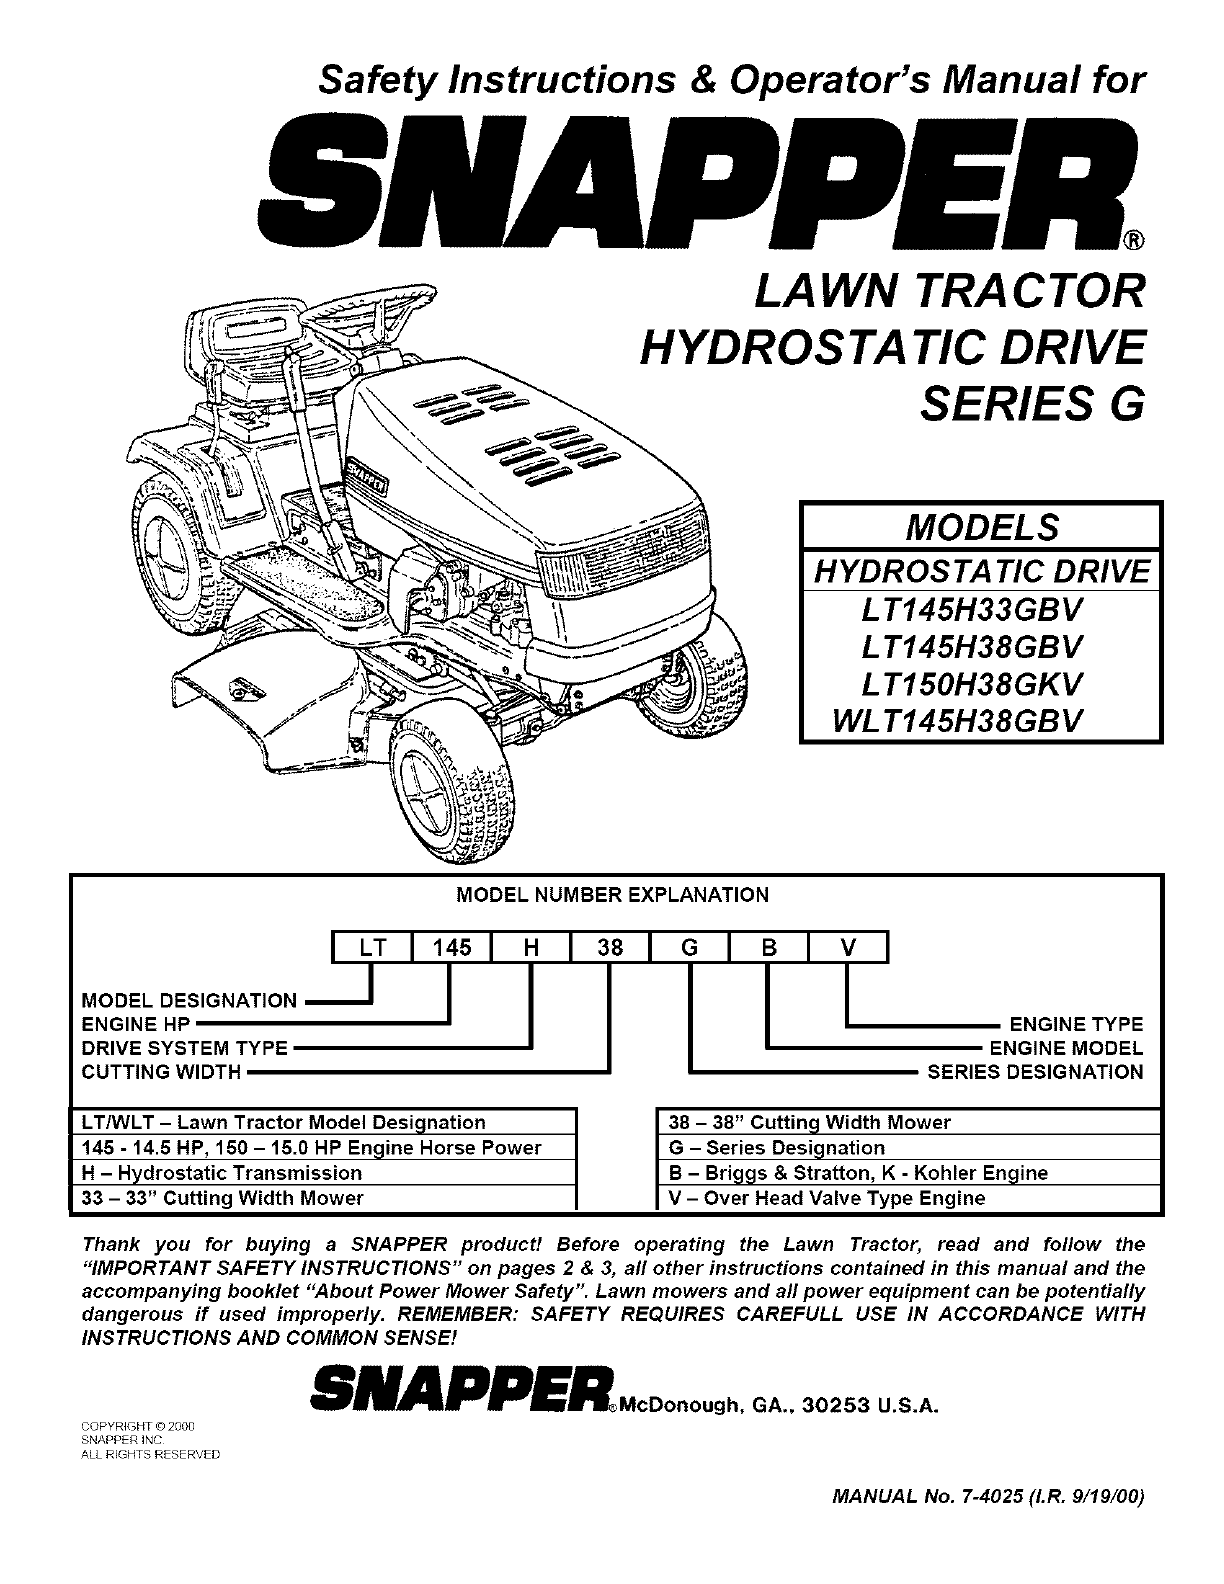 snapper lt145h38gbv user manual tractor manuals and guides l0808165 rh usermanual wiki snapper mower operator's manual Snapper Manuals Index